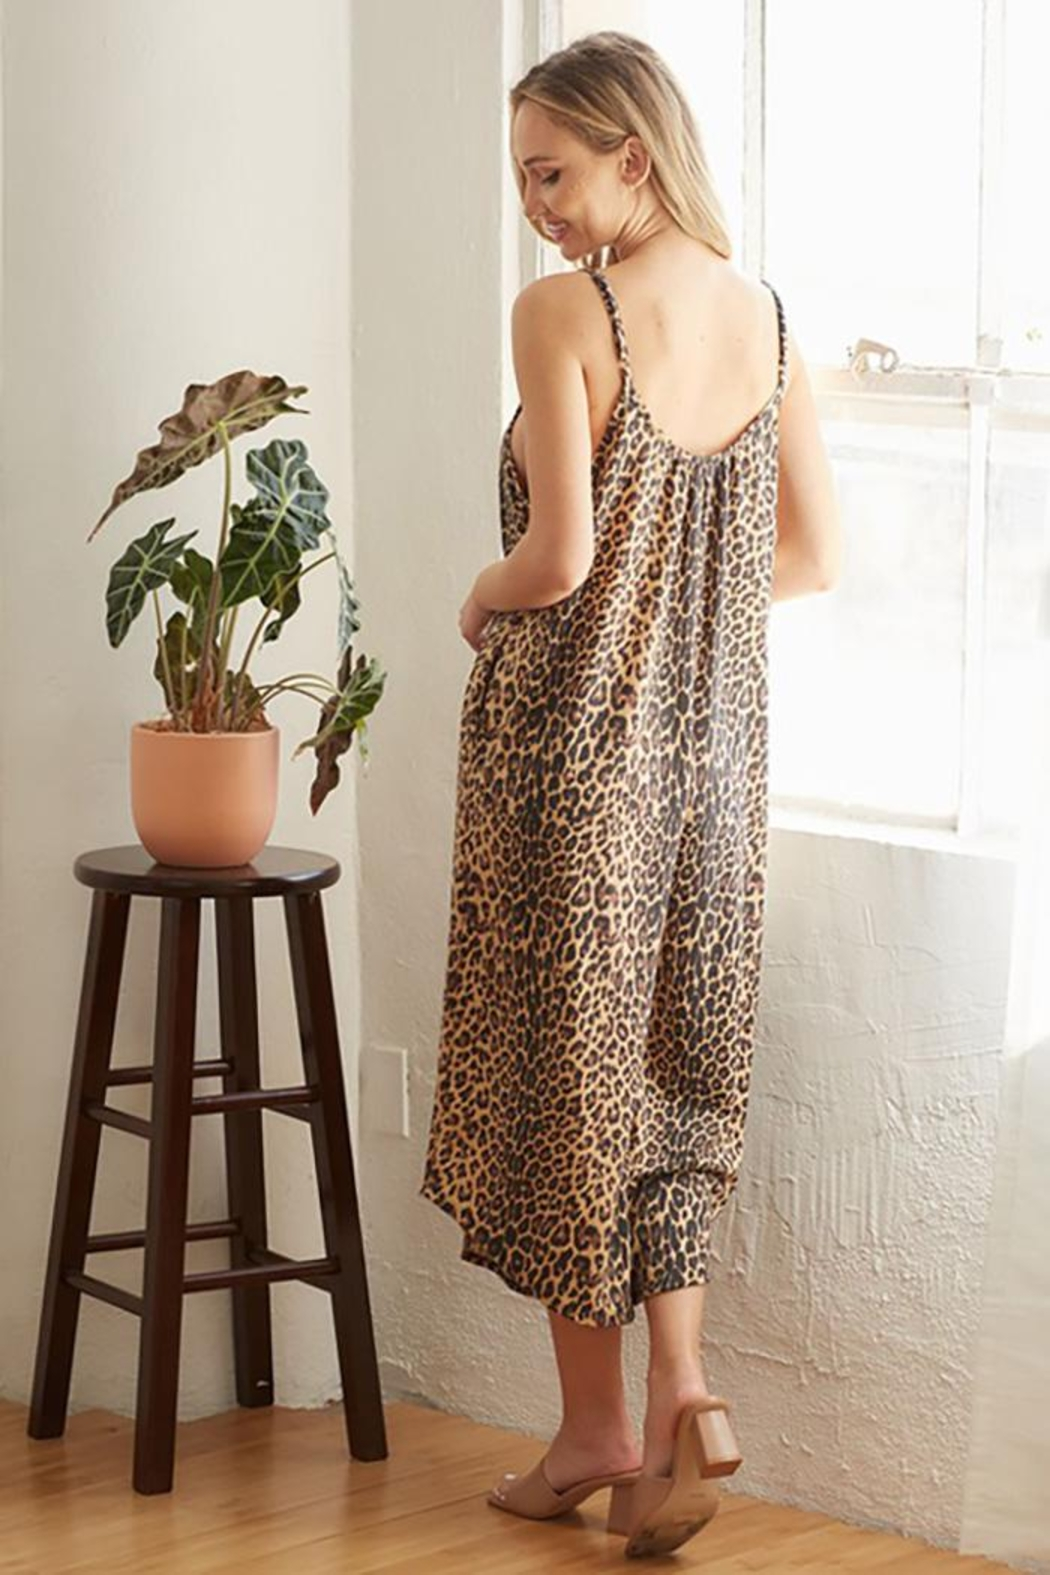 CY Fashion Cheetah Print Romper With Spaghetti Straps - Front Full Image